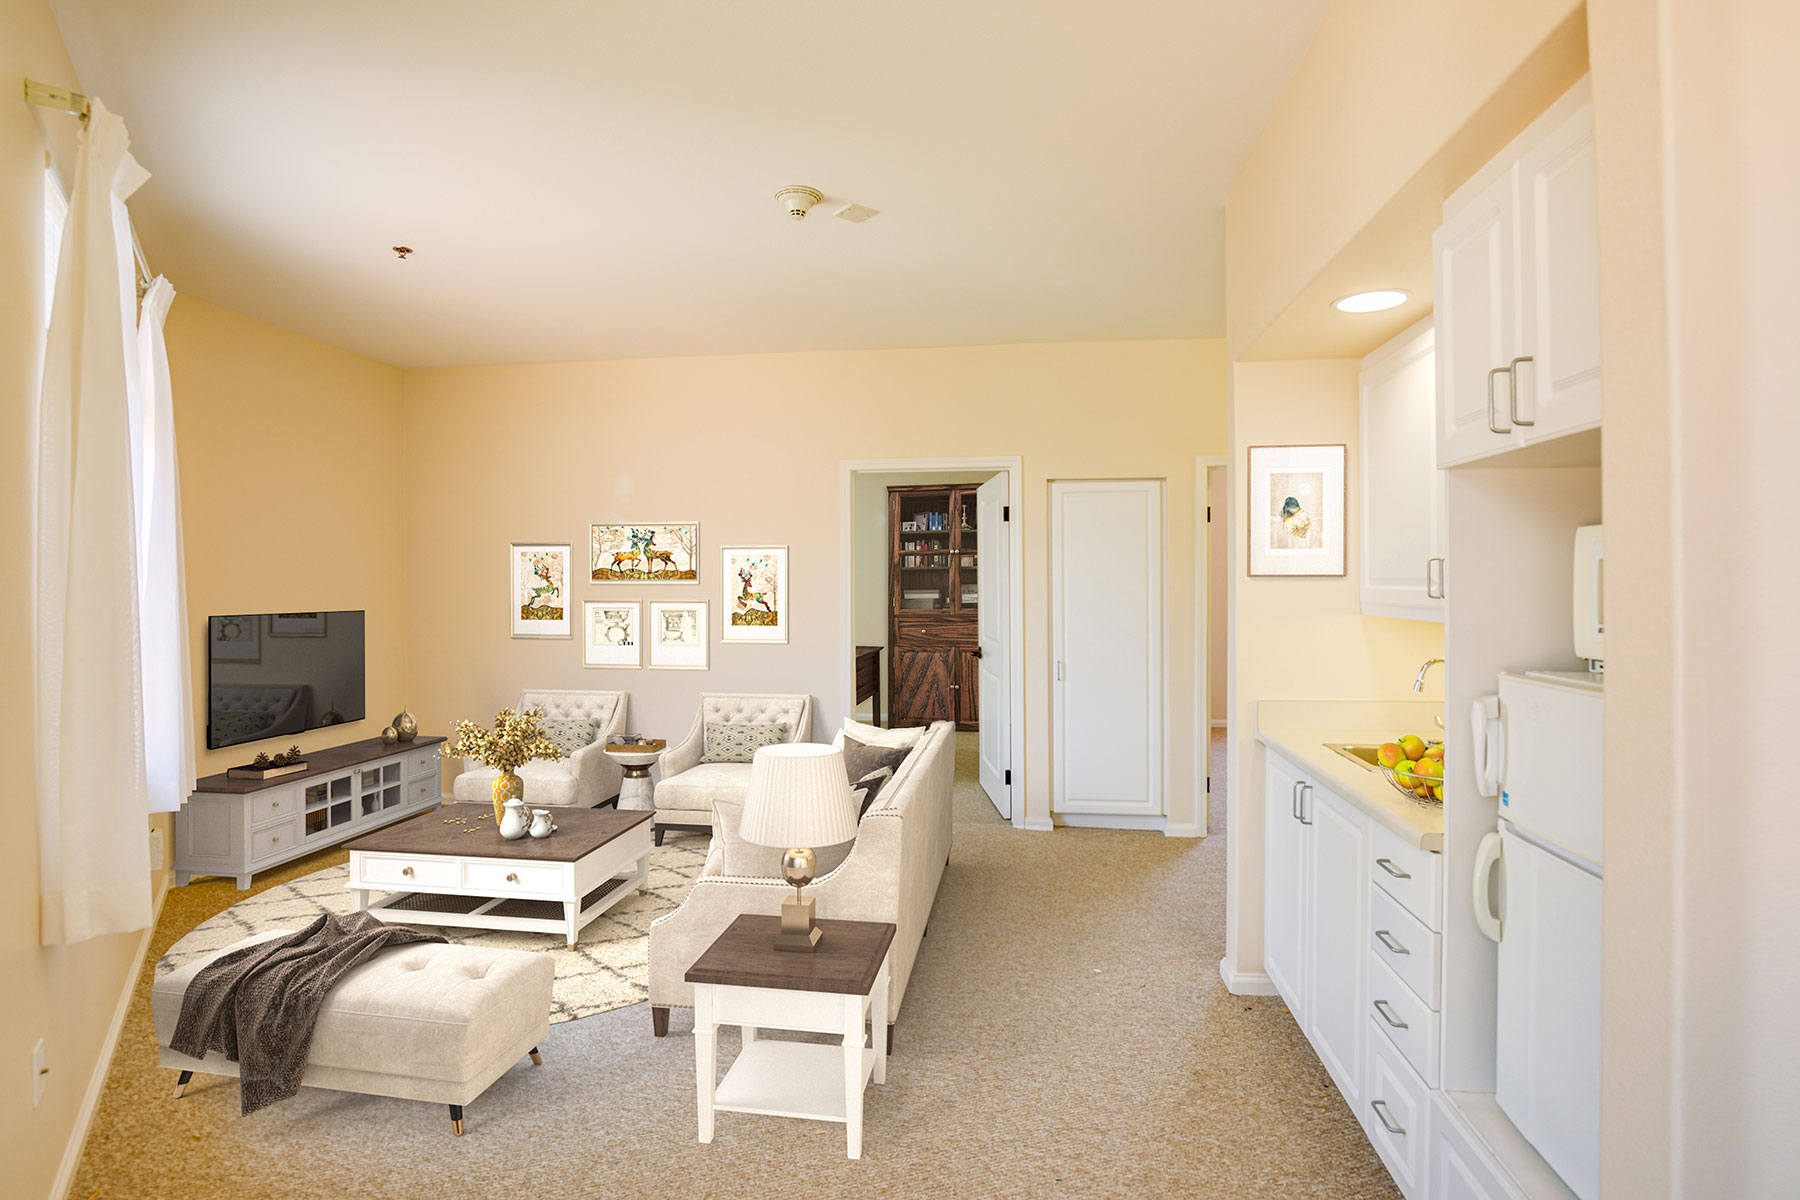 Large Assisted Living living room space.